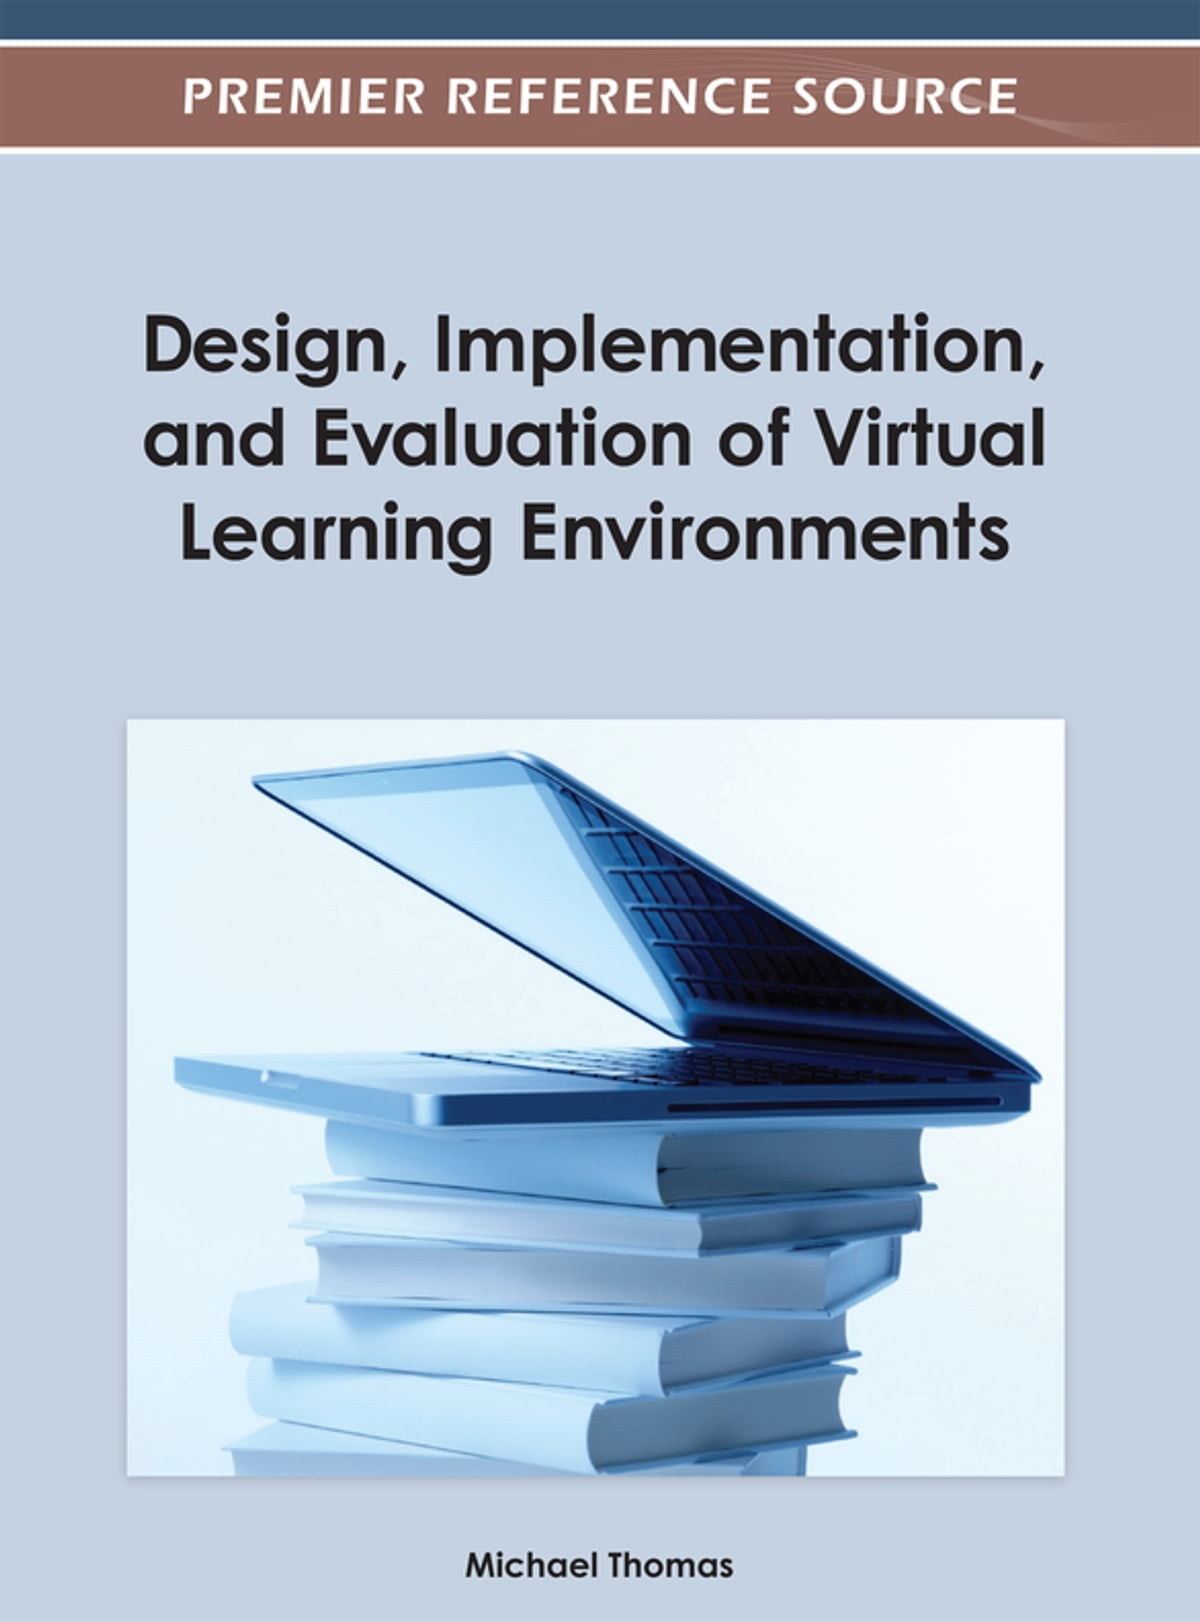 Virtual Classroom Design And Implementation ~ 「design implementation and evaluation of virtual